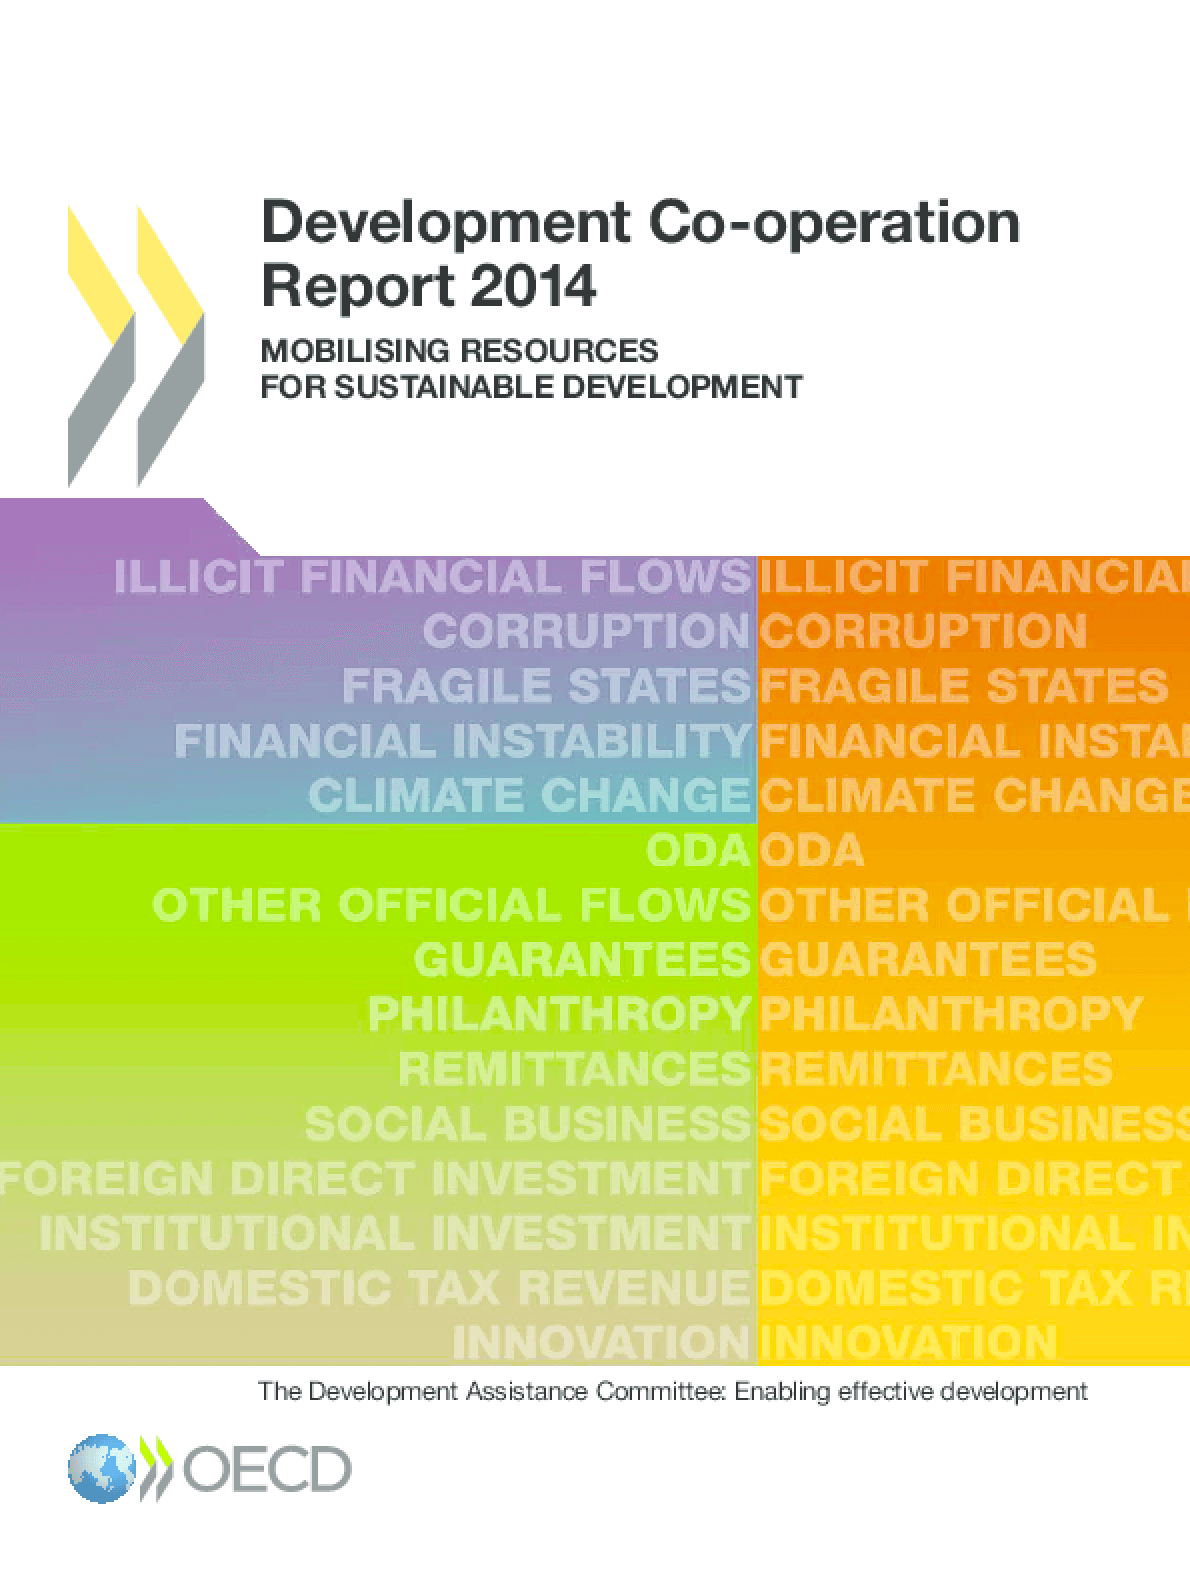 Development Co-operation Report 2014: Mobilising Resources for Sustainable Development